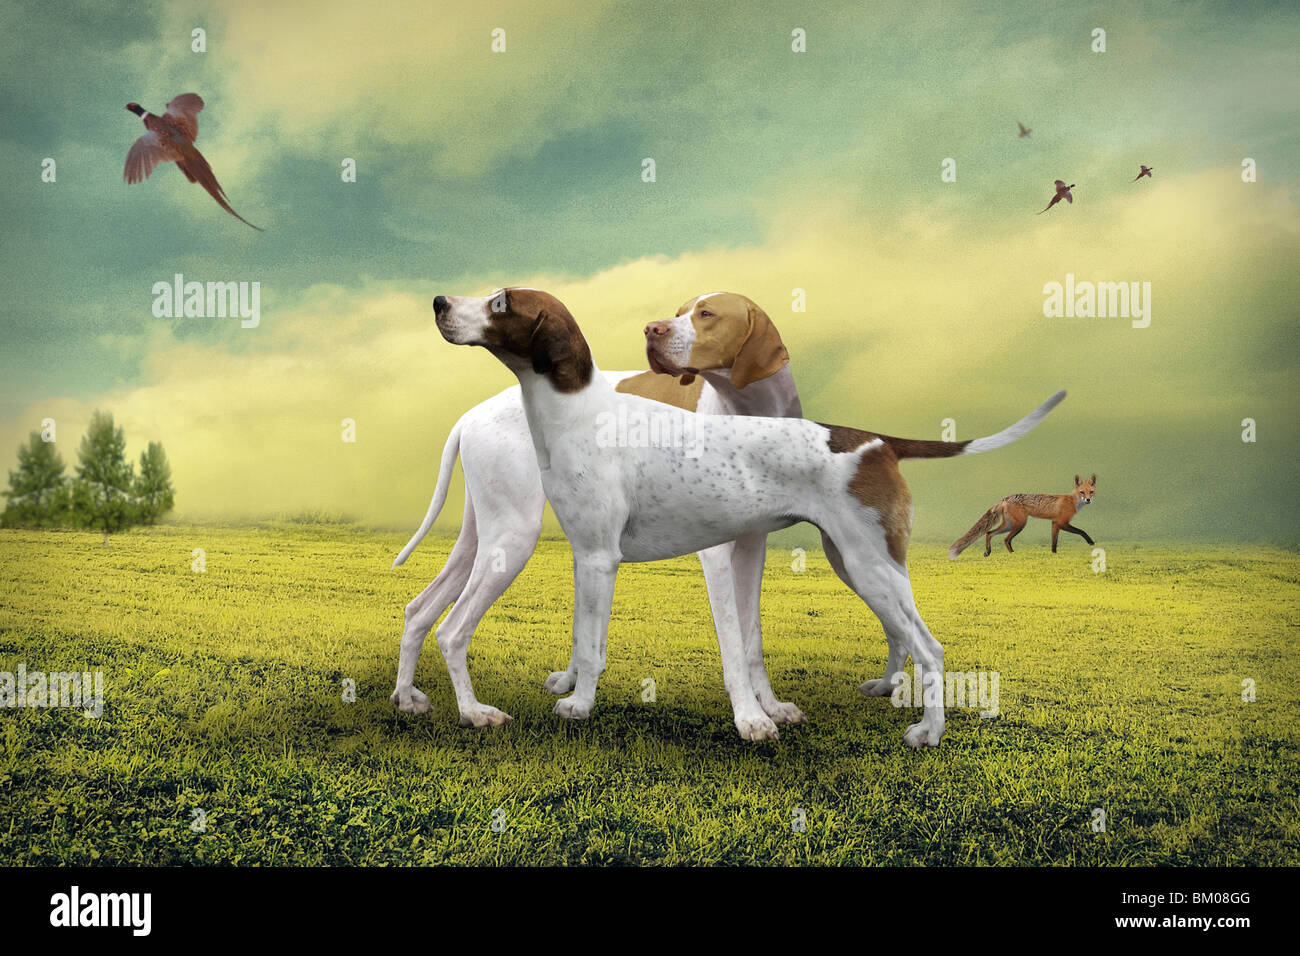 hunting dogs in country scene with pheasant - Stock Image